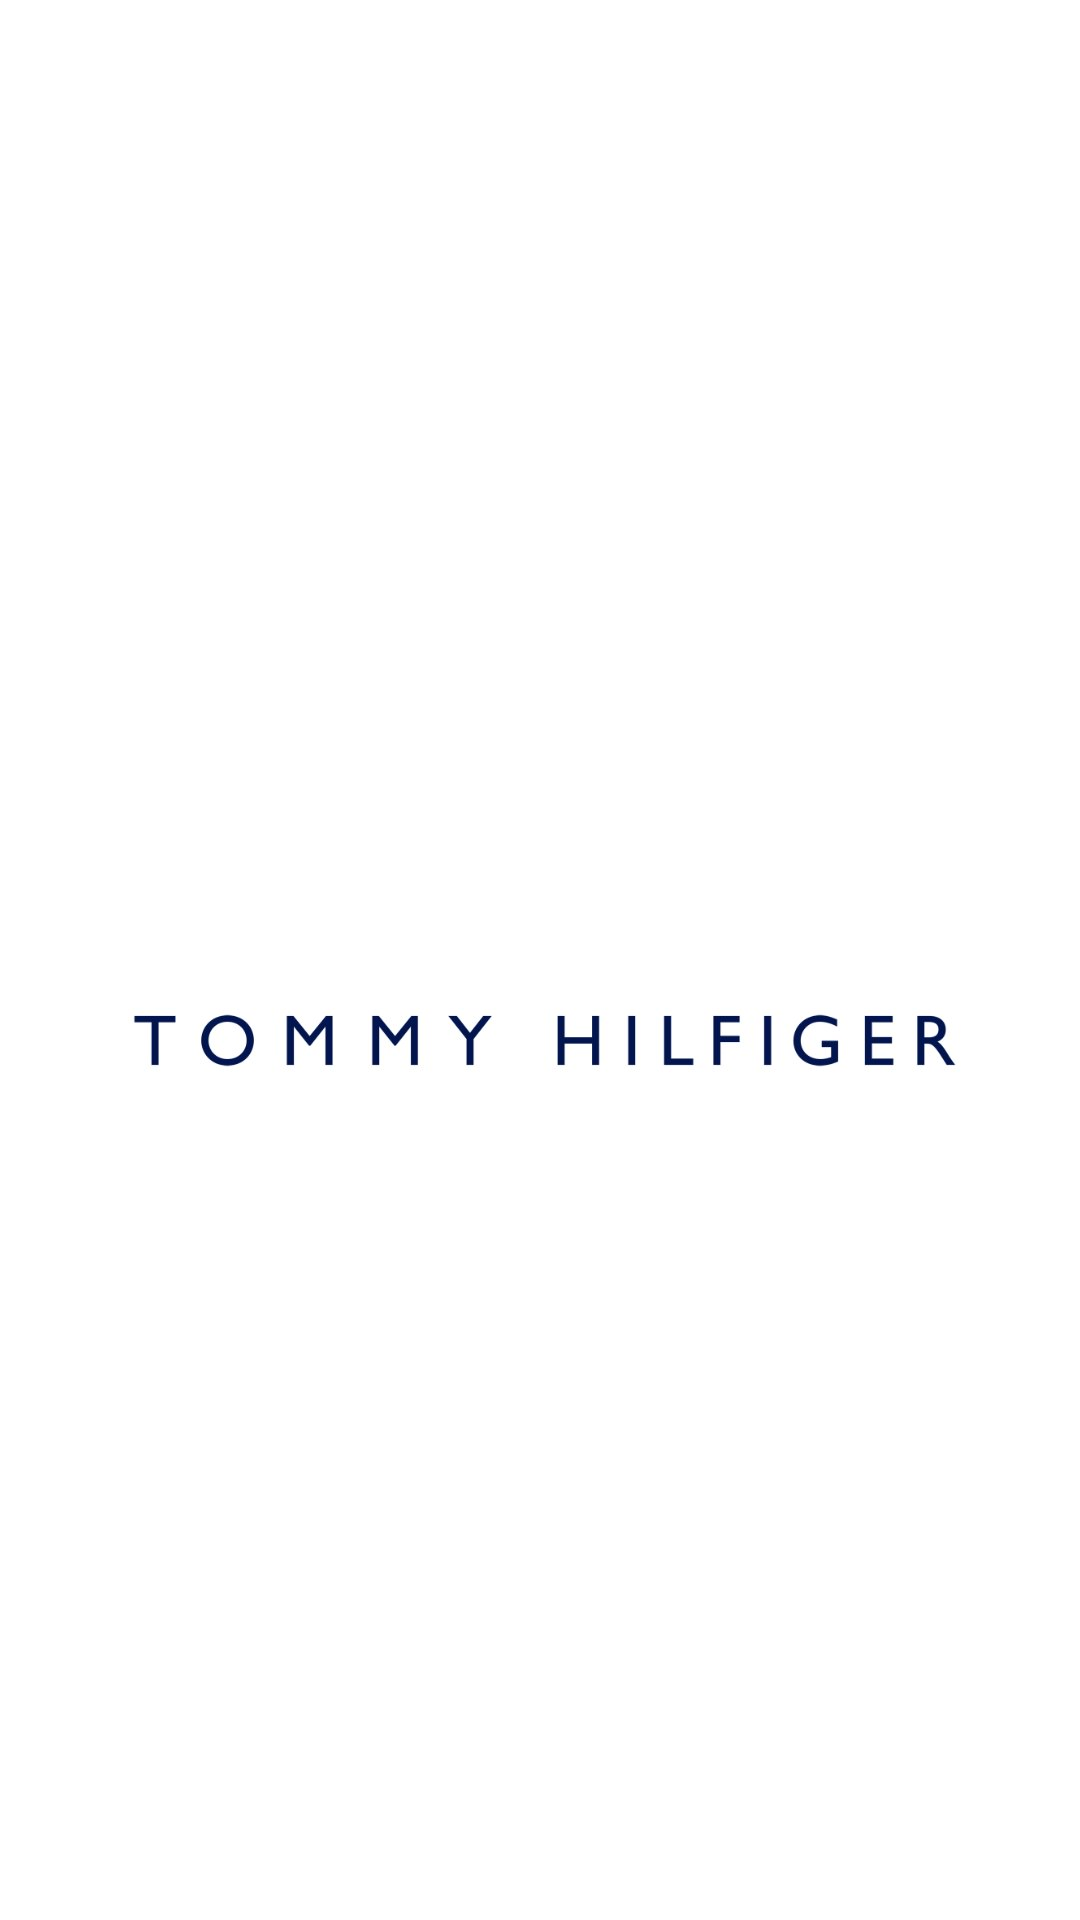 tommyhilfiger10 - TOMMY HILFIGER/トミー・ヒルフィガーの高画質スマホ壁紙20枚 [iPhone&Androidに対応]